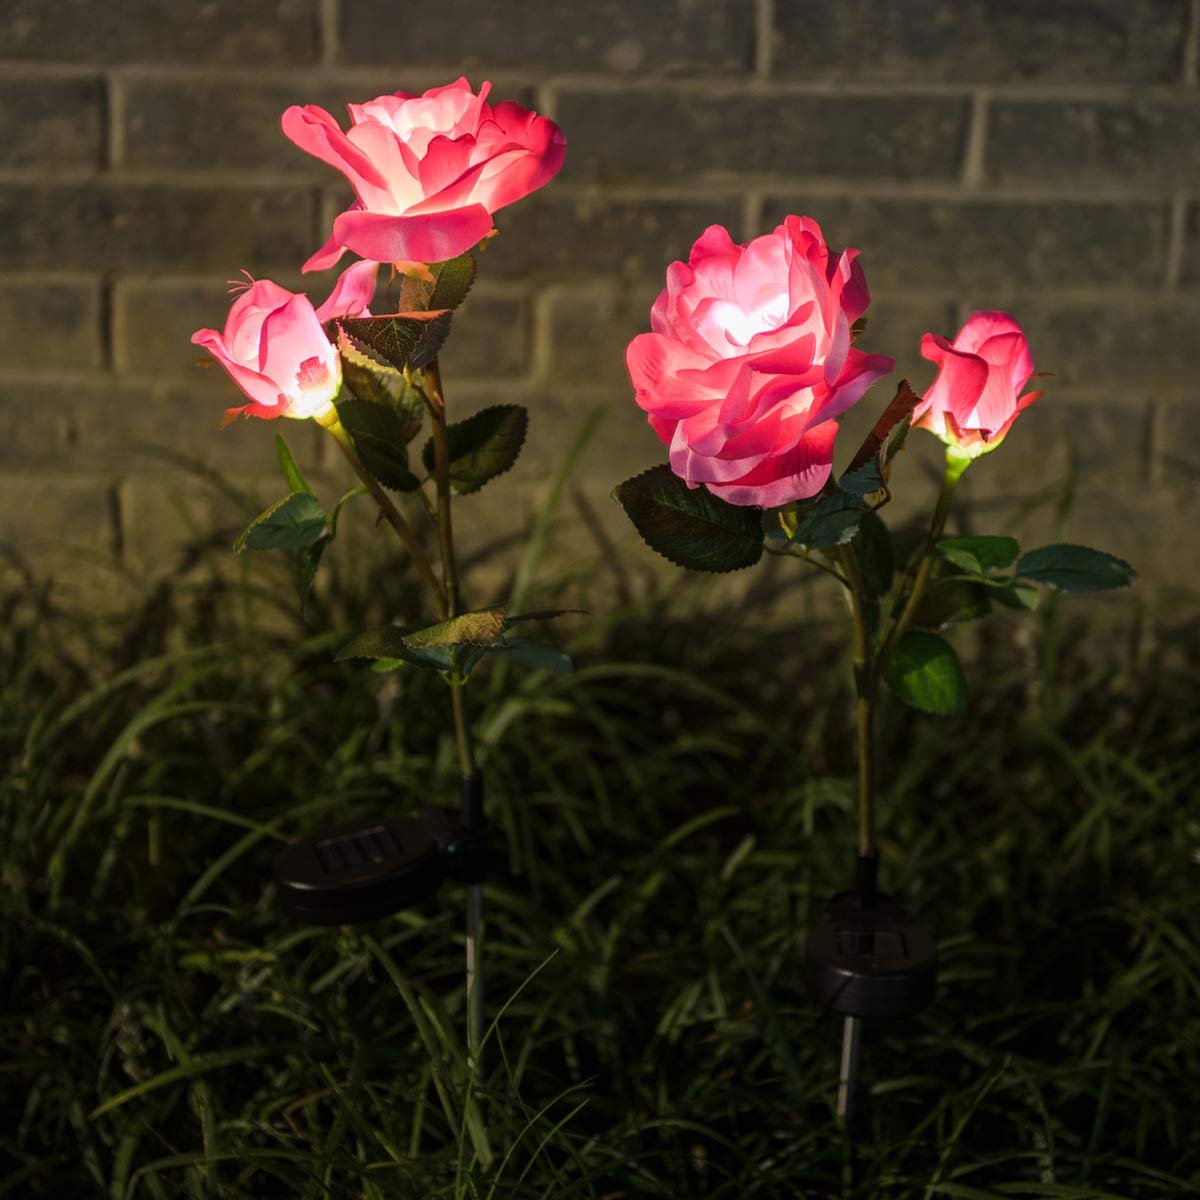 WED Outdoor Solar Garden Stake Lights, 2 Pack Solar Powered Lights with 4 Rose Flower, LED Solar Decorative Lights for Garden Patio Backyard Patio Pathway Backyard Decoration(Pink)